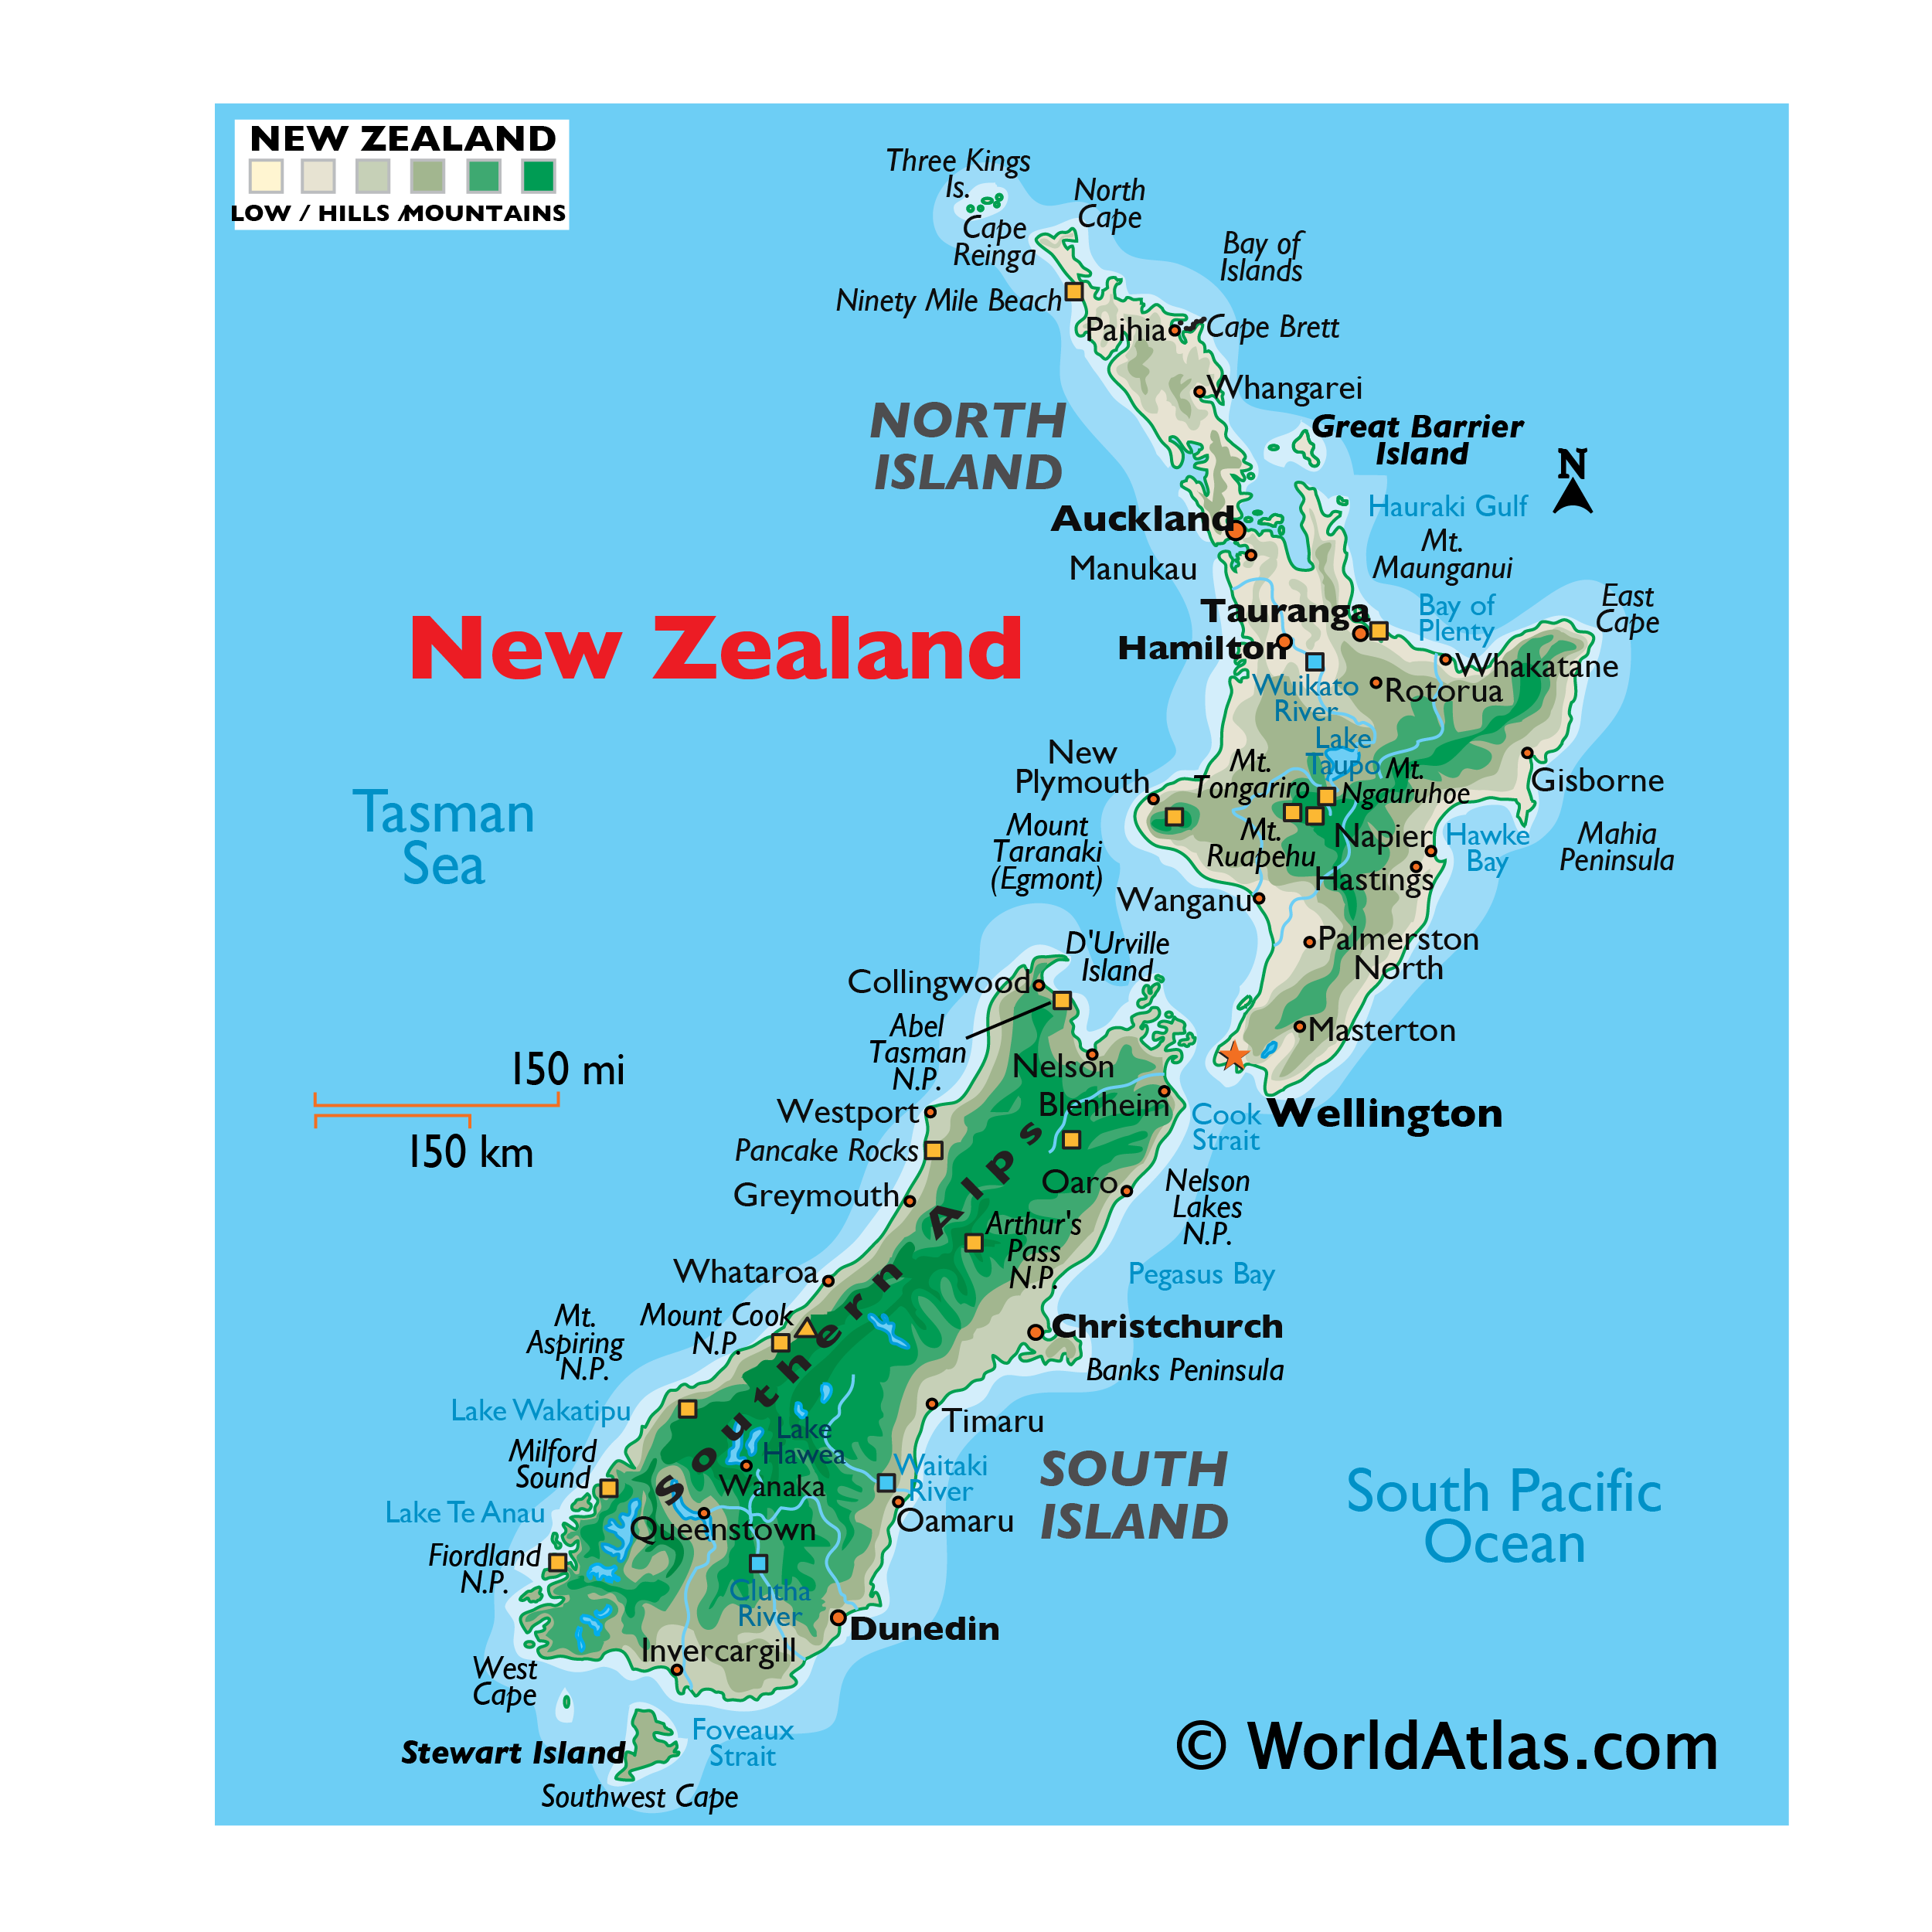 Physical Map of New Zealand showing relief, mountains, major islands, capes, national parks, rivers, important cities, and more.